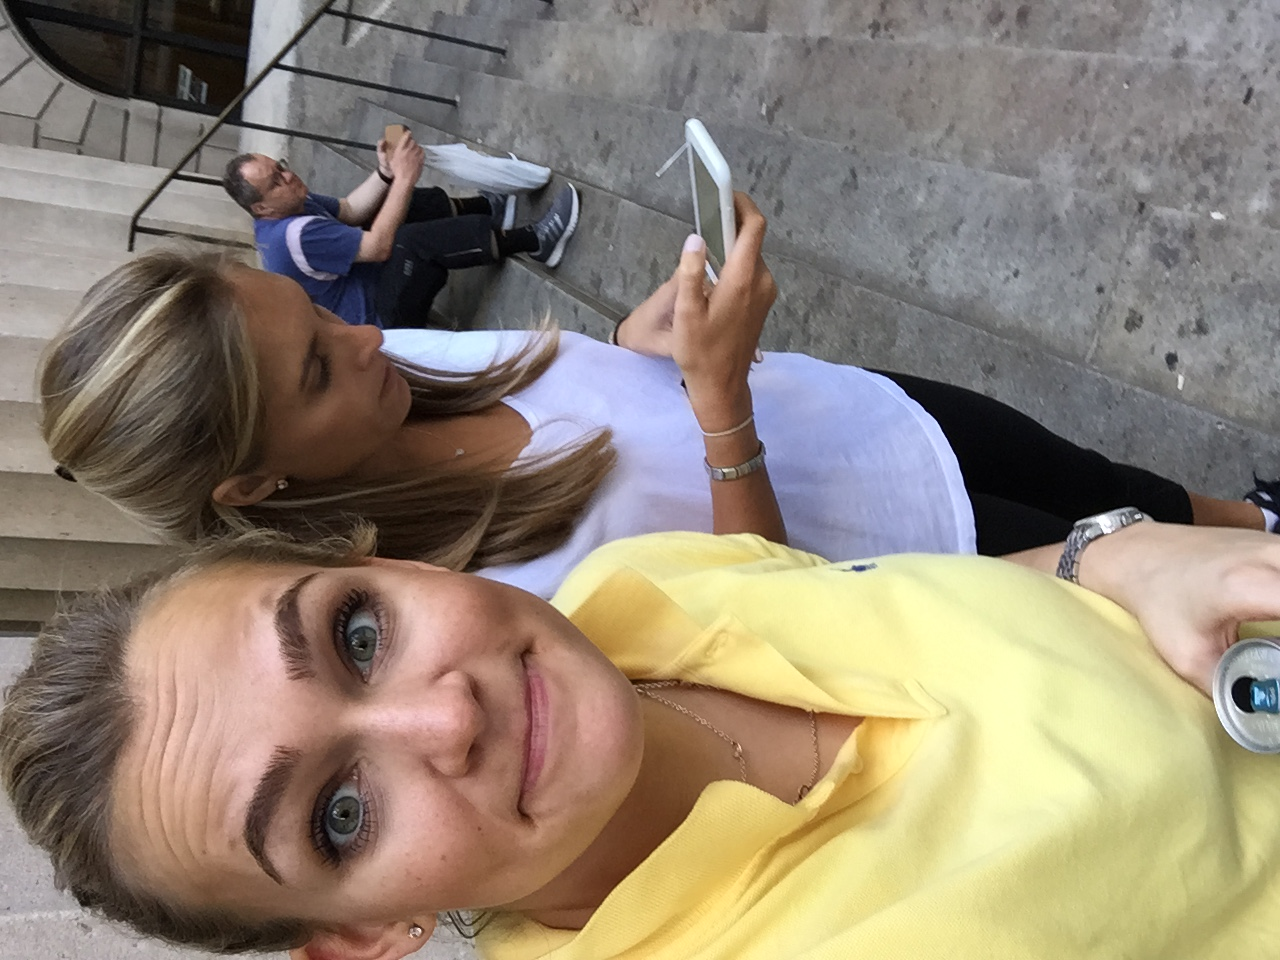 Aspiring selfie model, Meredith Bragg, captures valuable behind the scenes documentation.  Erin Keleher keeps up critical client relations.  Man on the street ponders the FCOJ market/life.